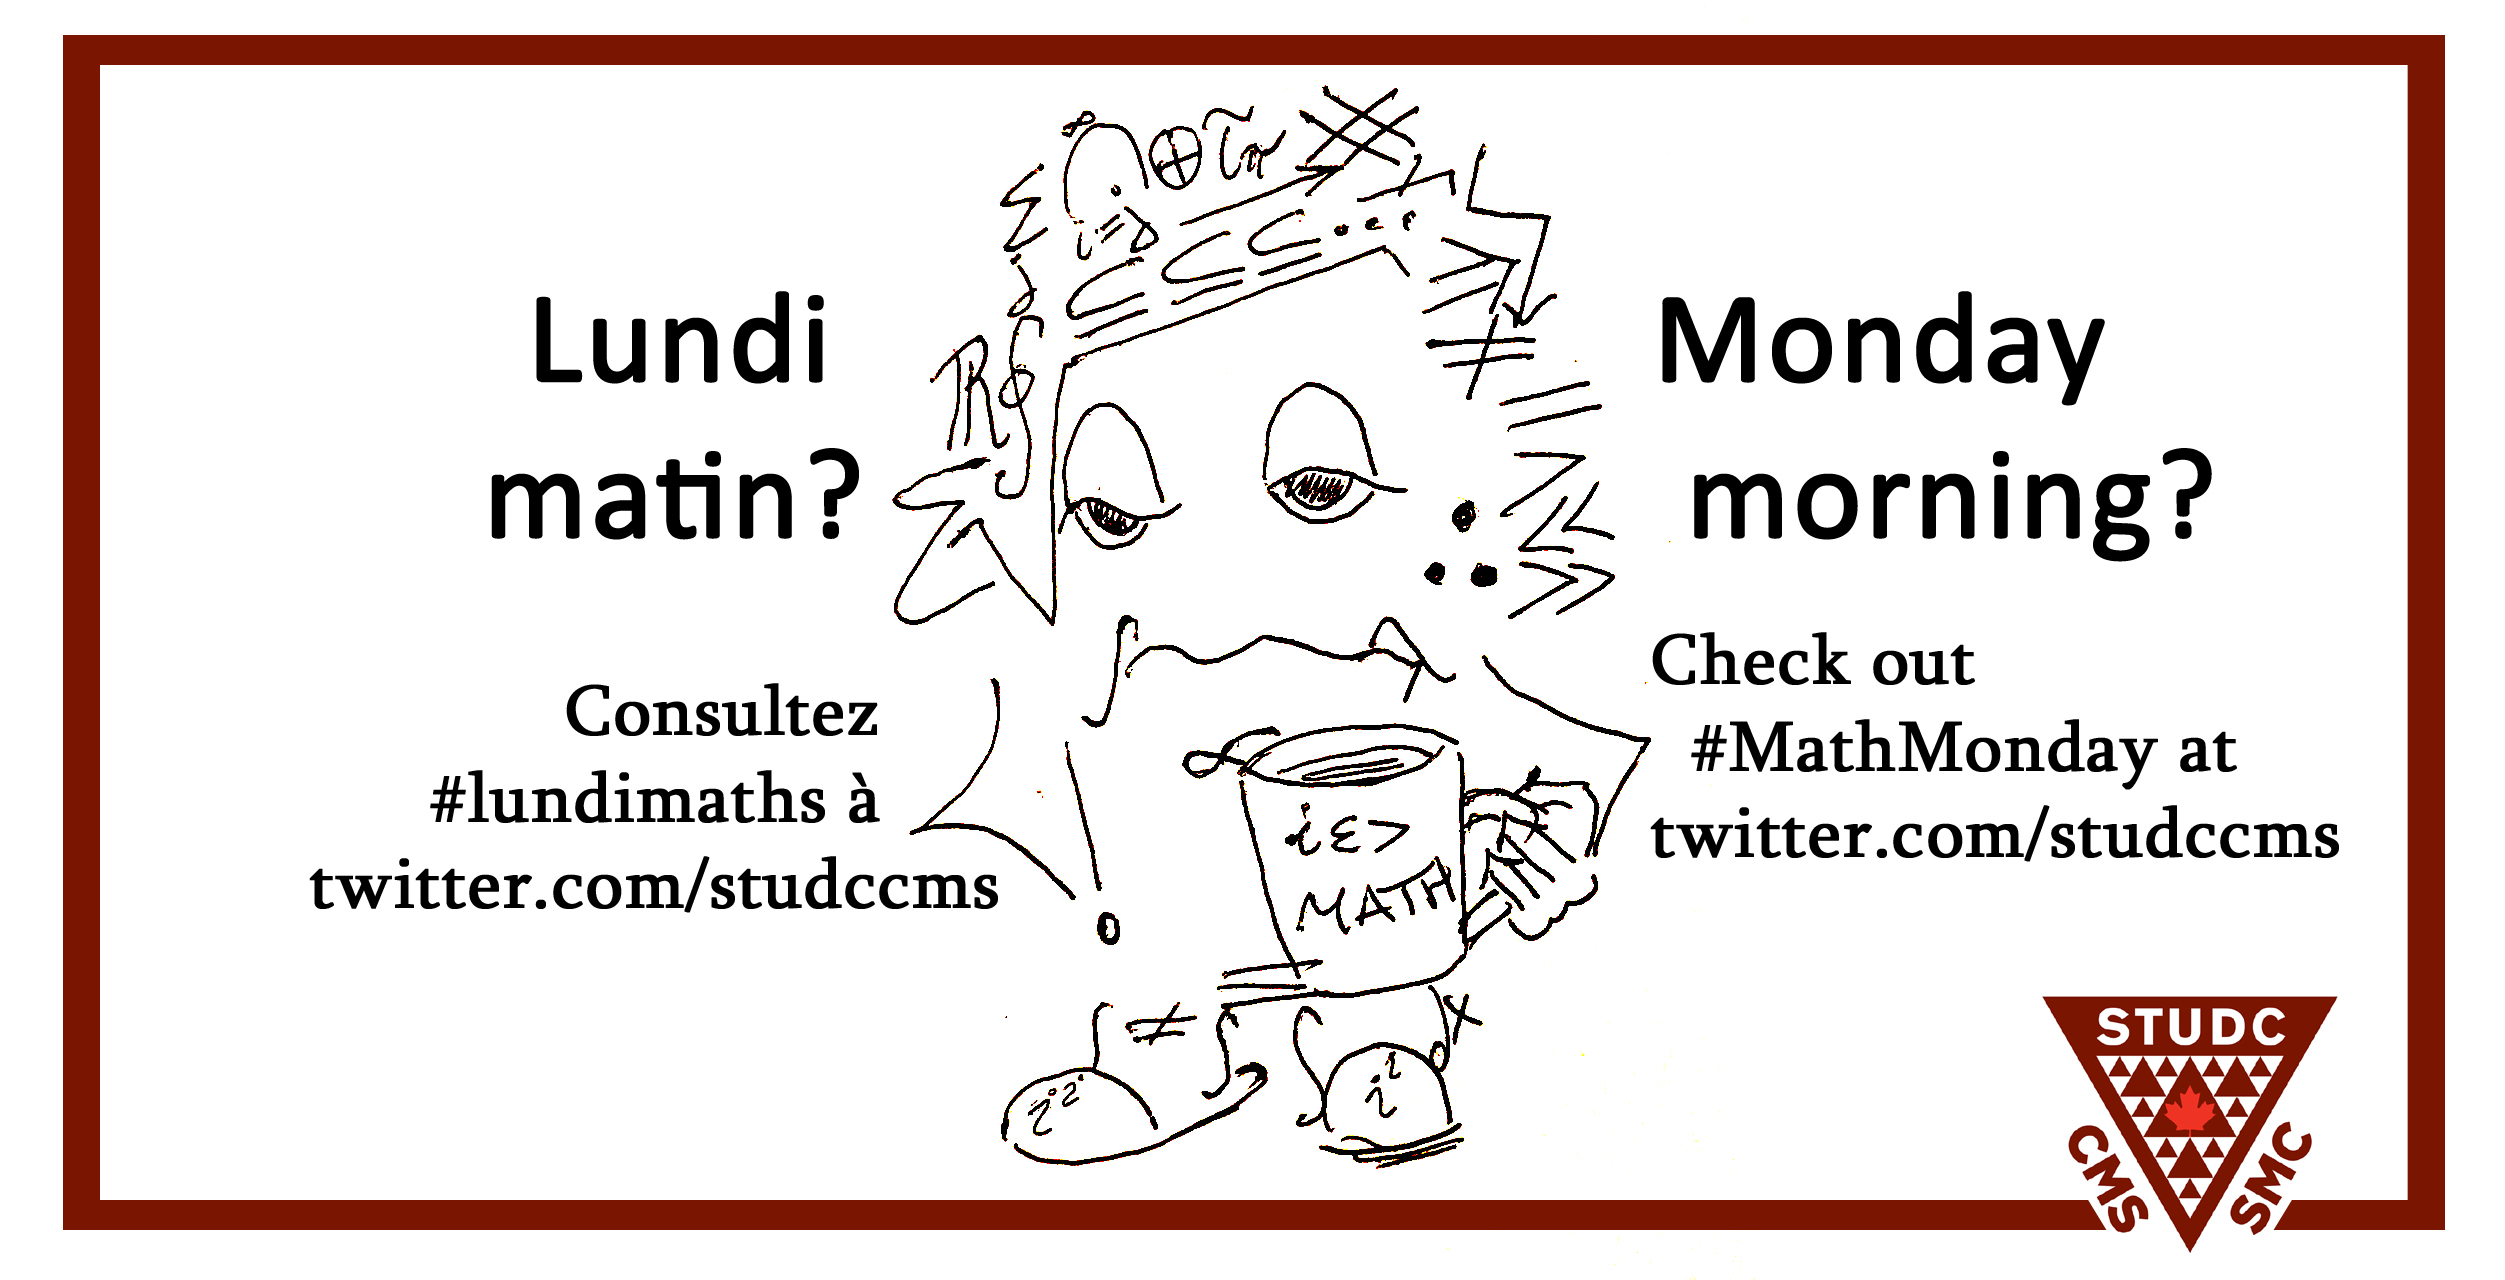 hand-drawn ad for MathMondays on twitter